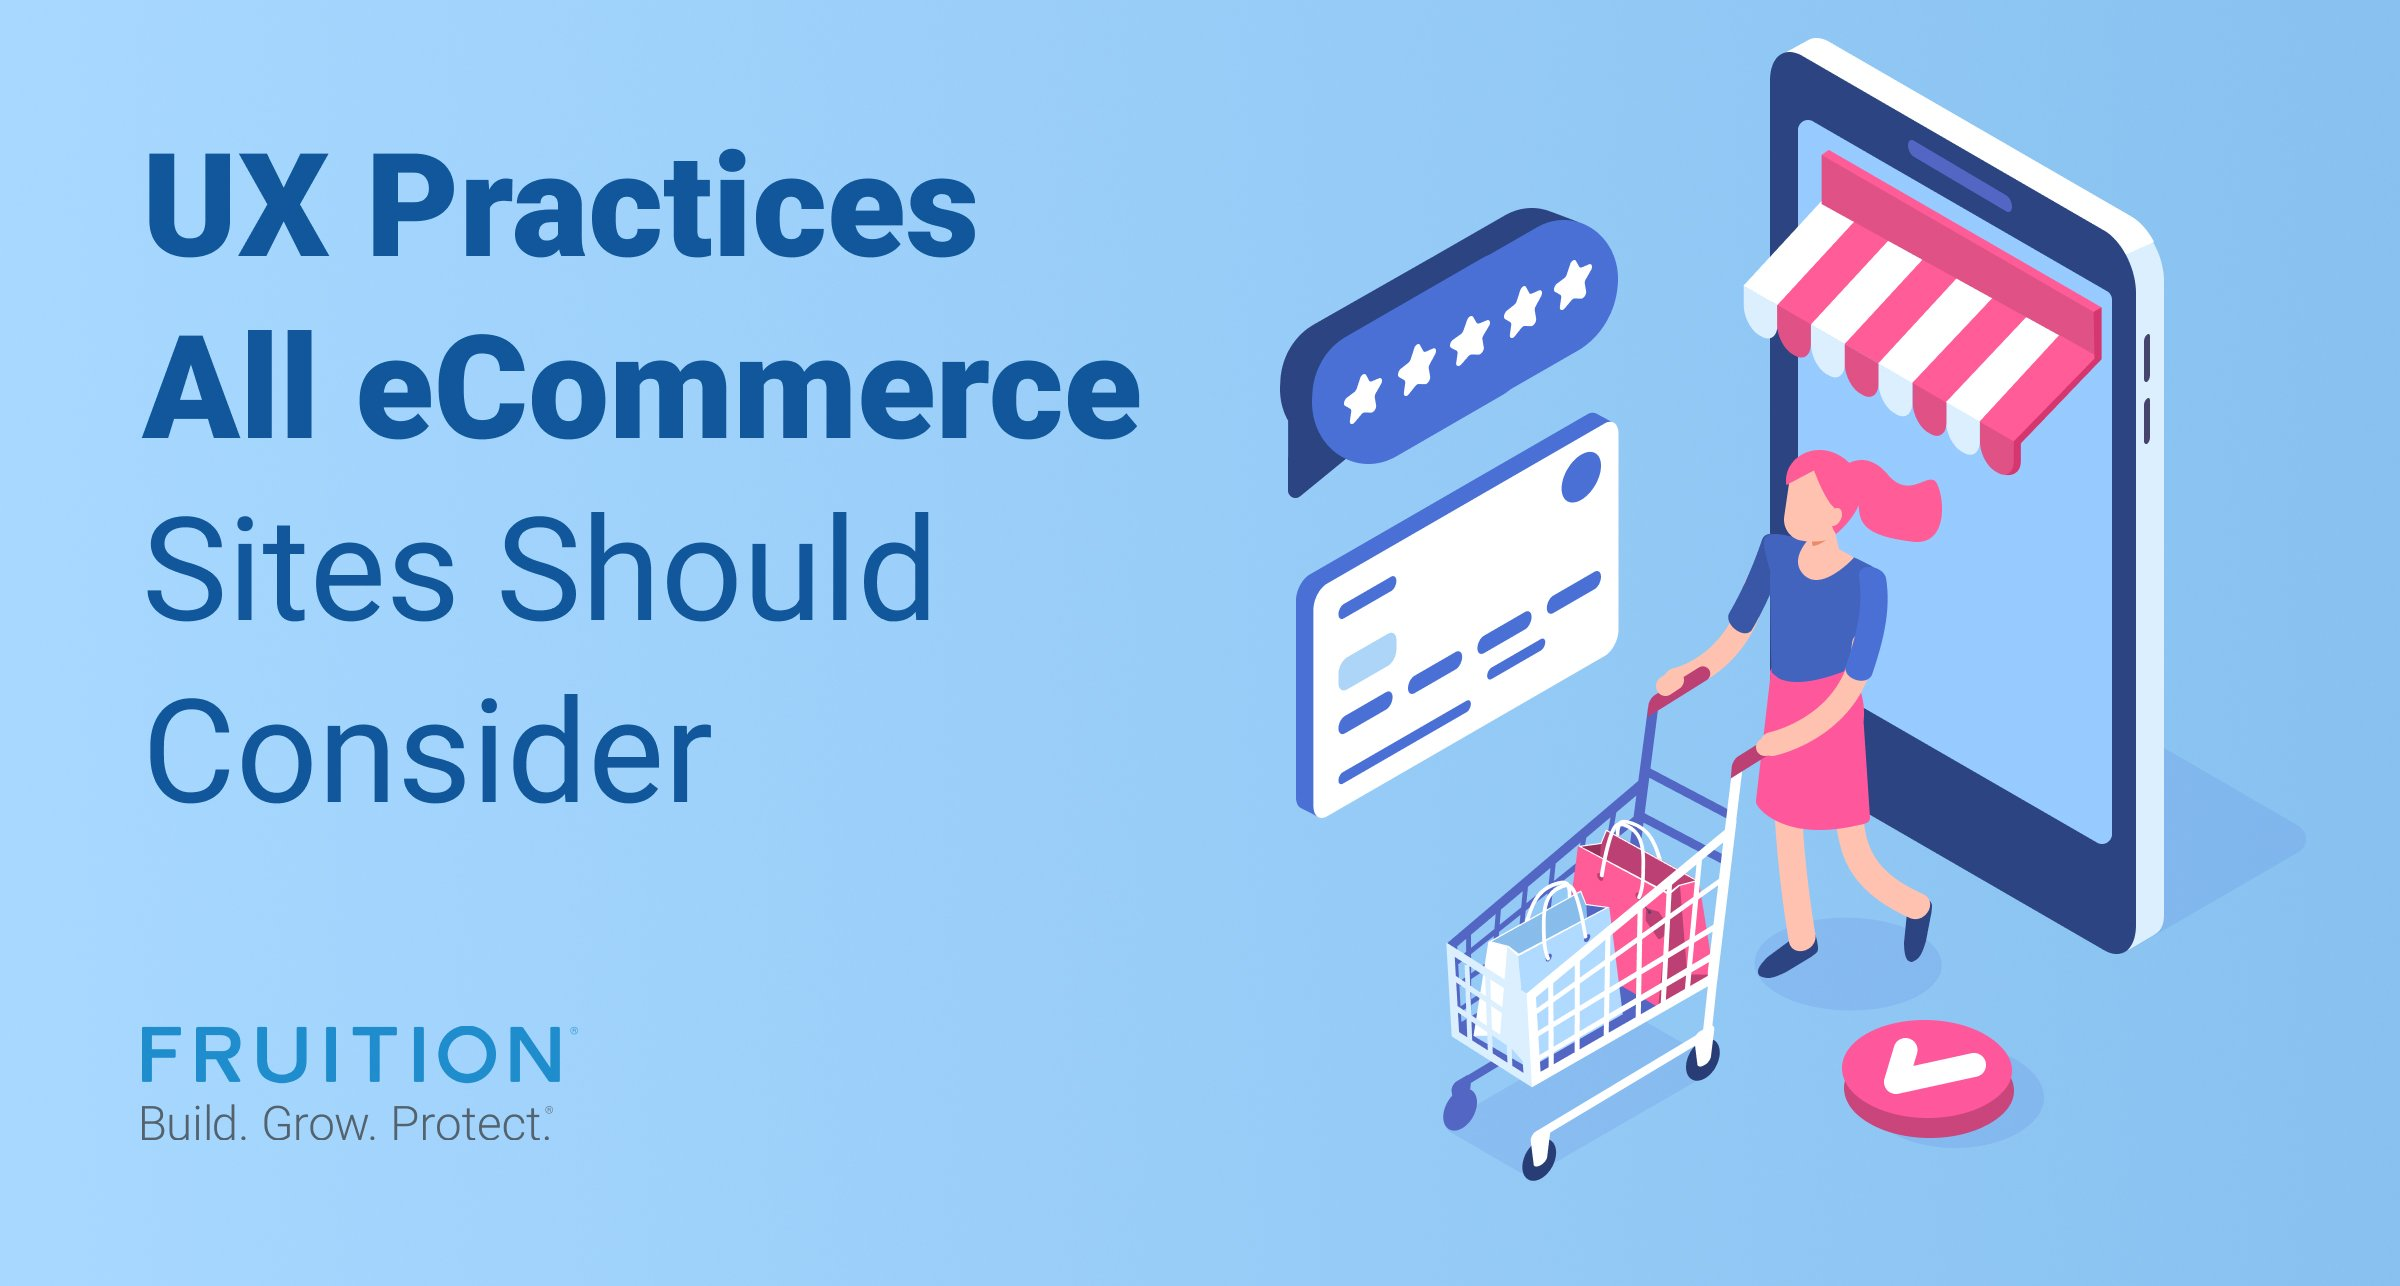 UX Practices All eCommerce Sites Should Consider